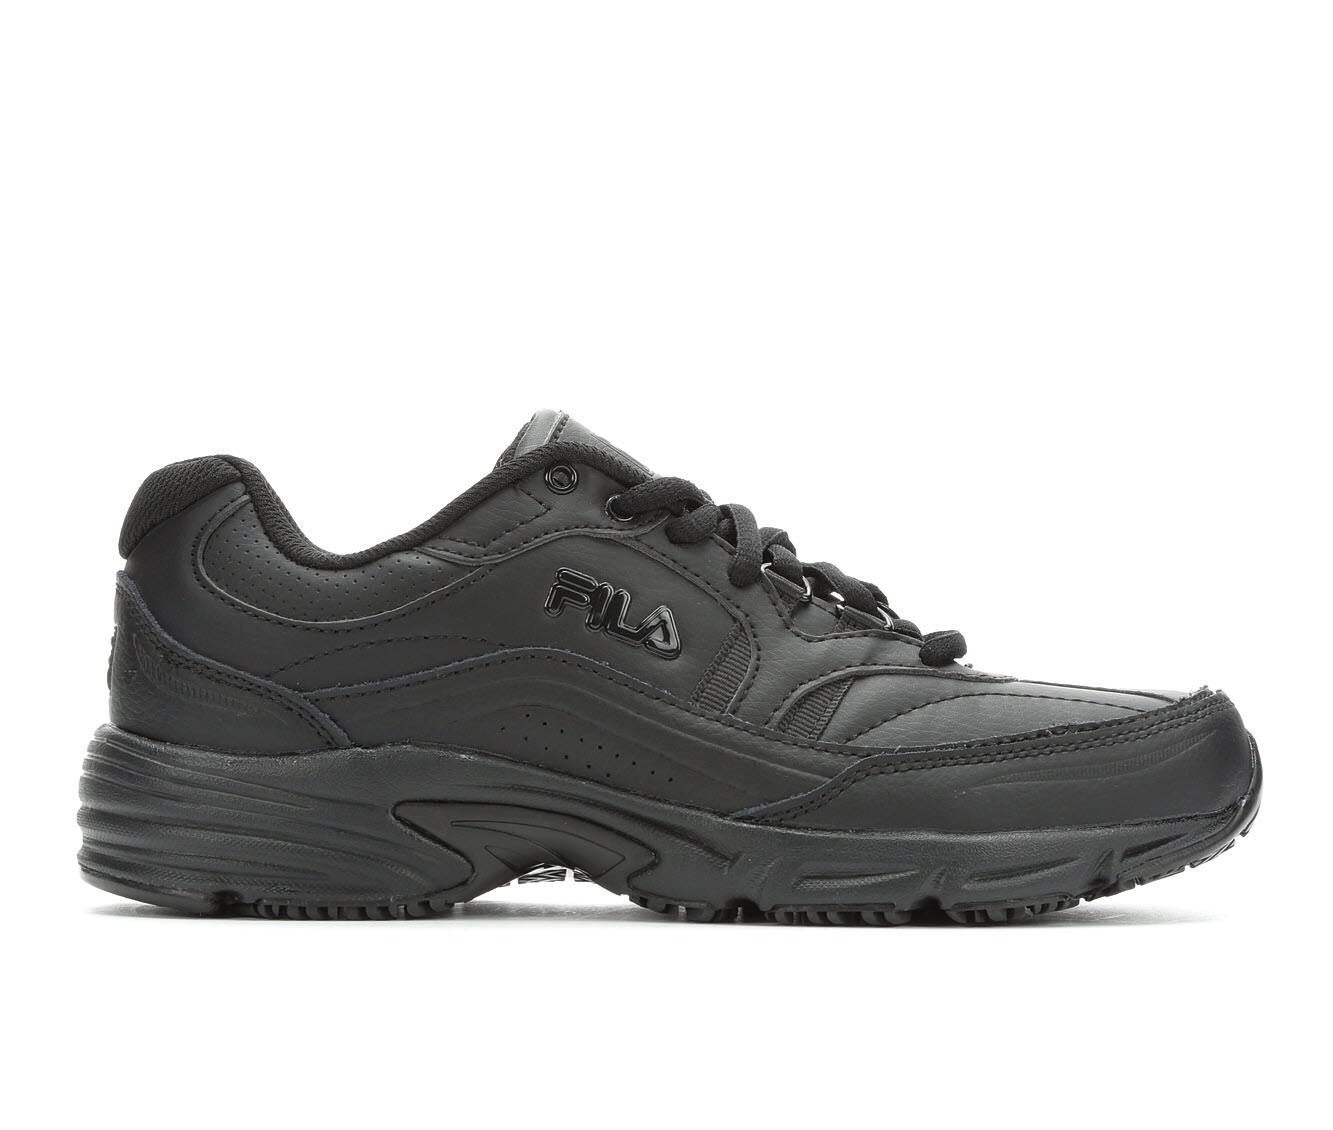 fila safety shoes Sale,up to 78% Discounts